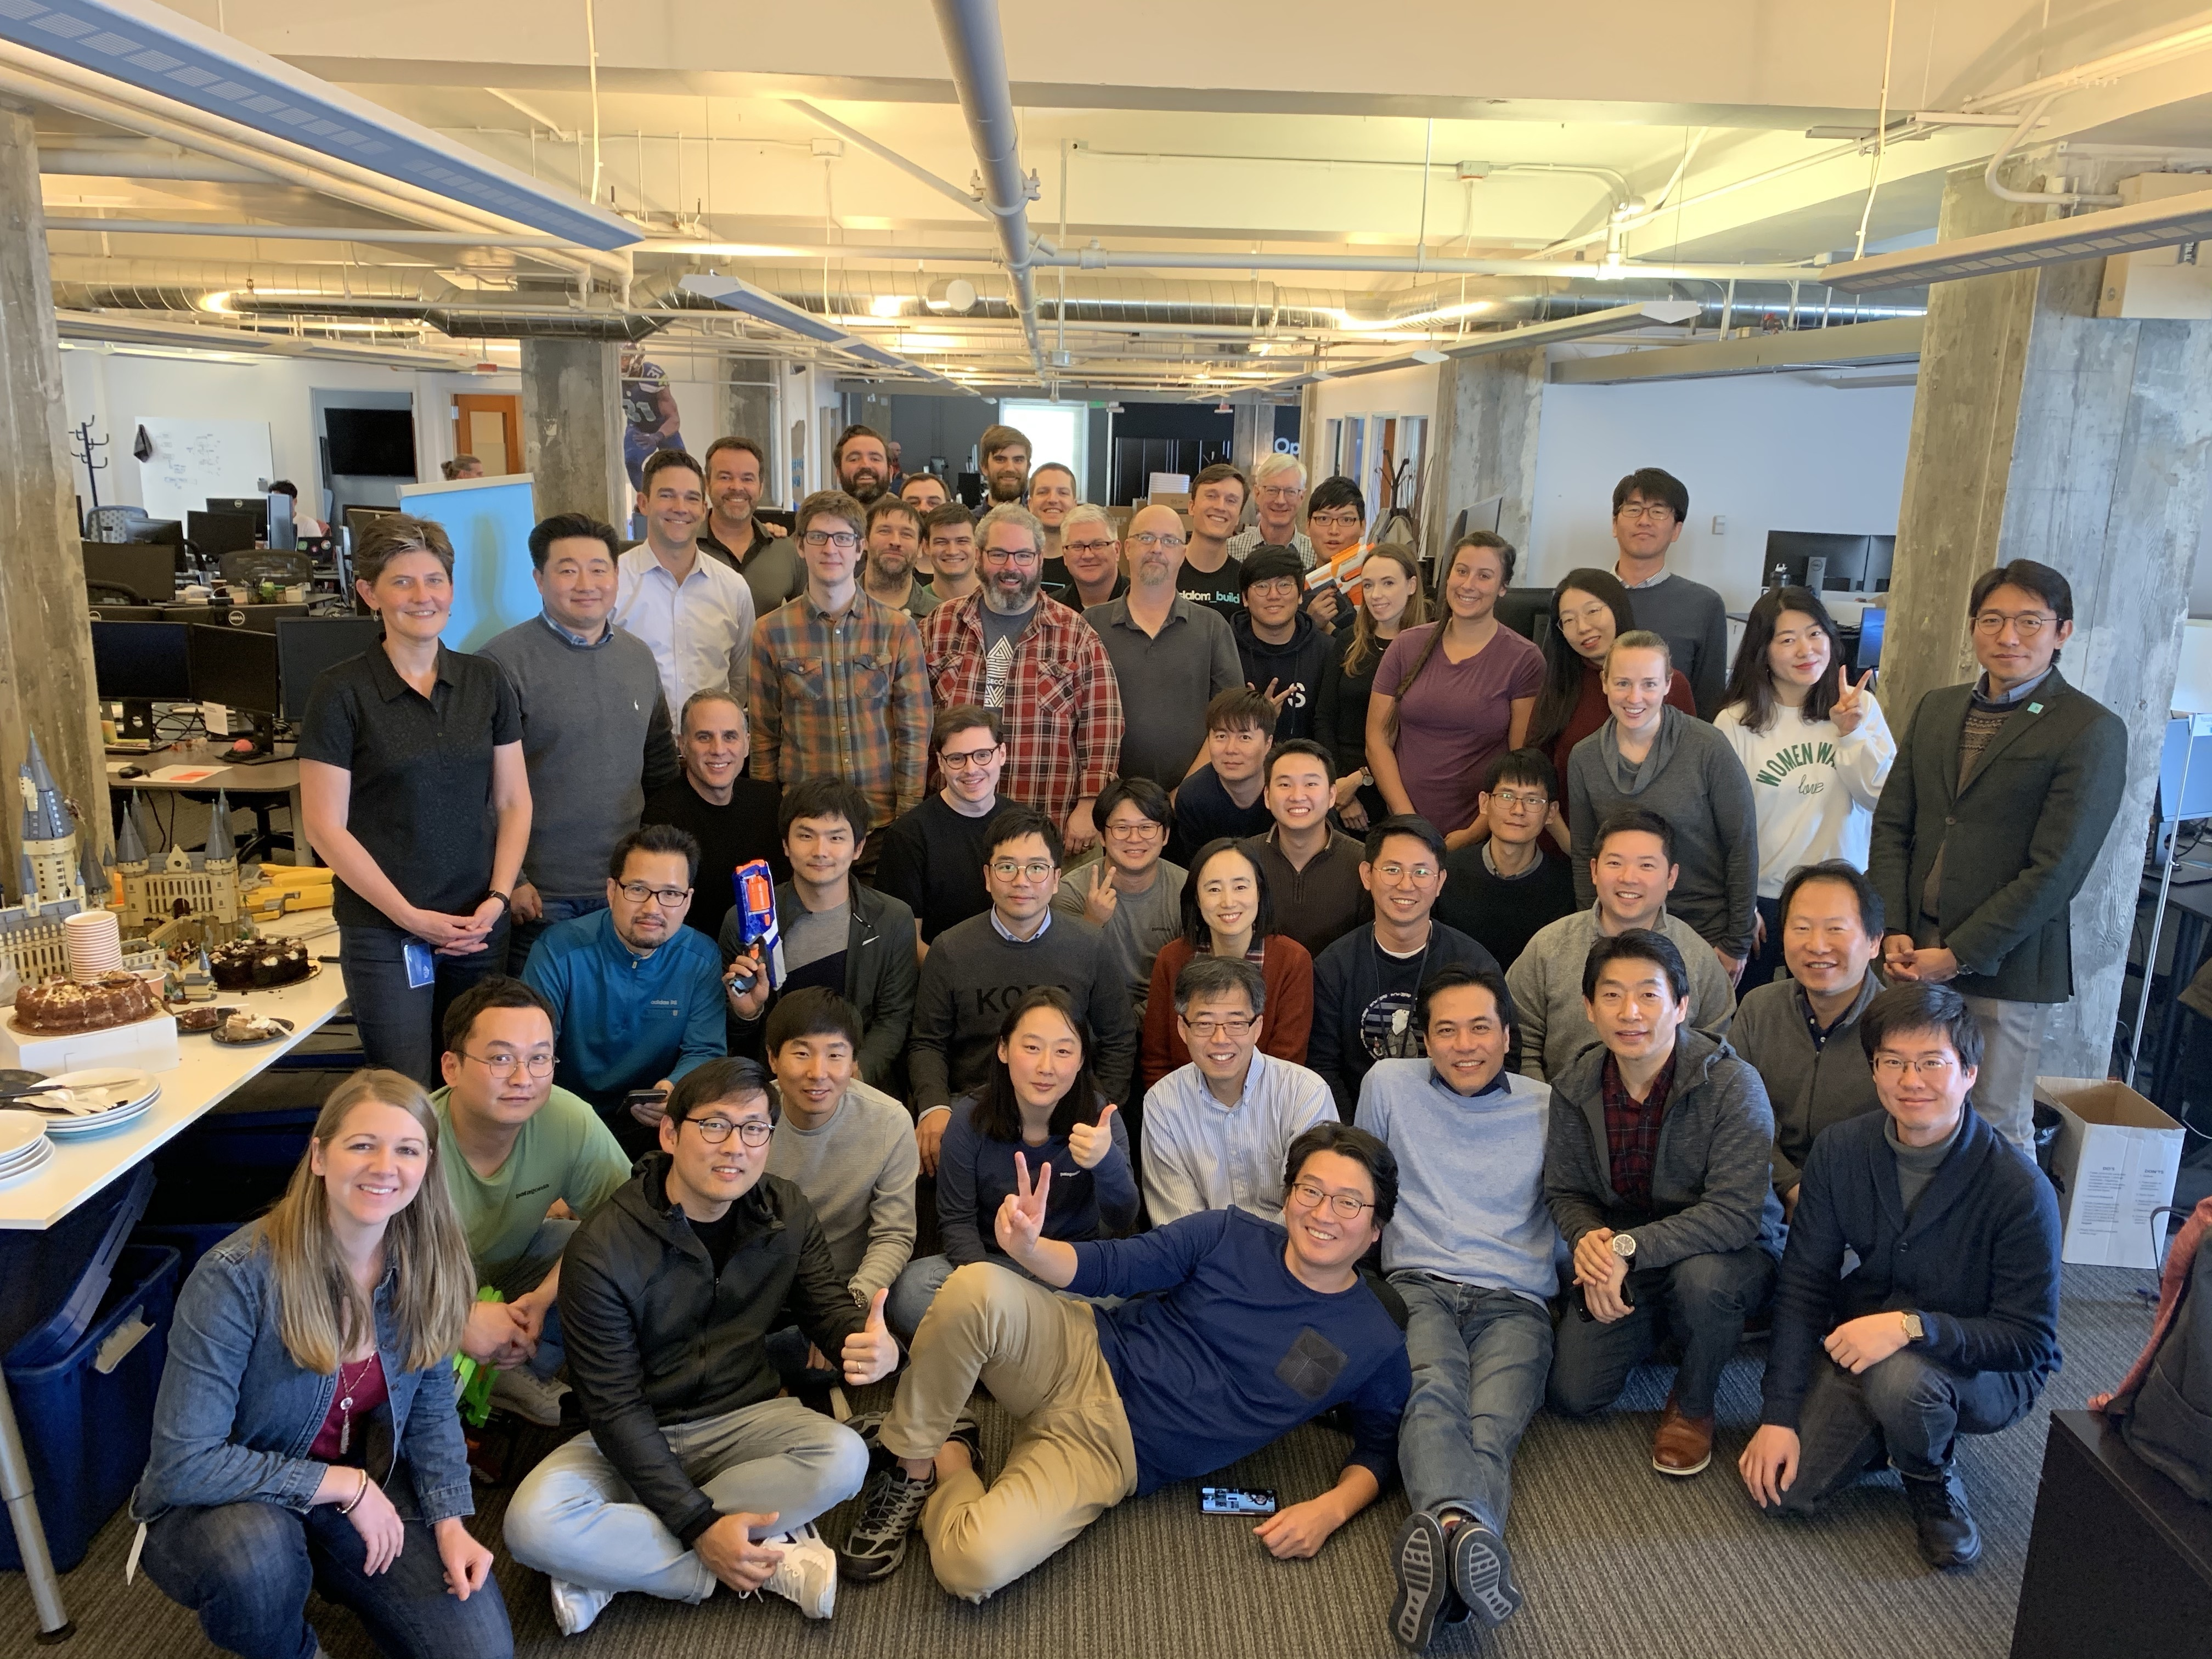 Large group of LG and Slalom Build builders together during an office event.